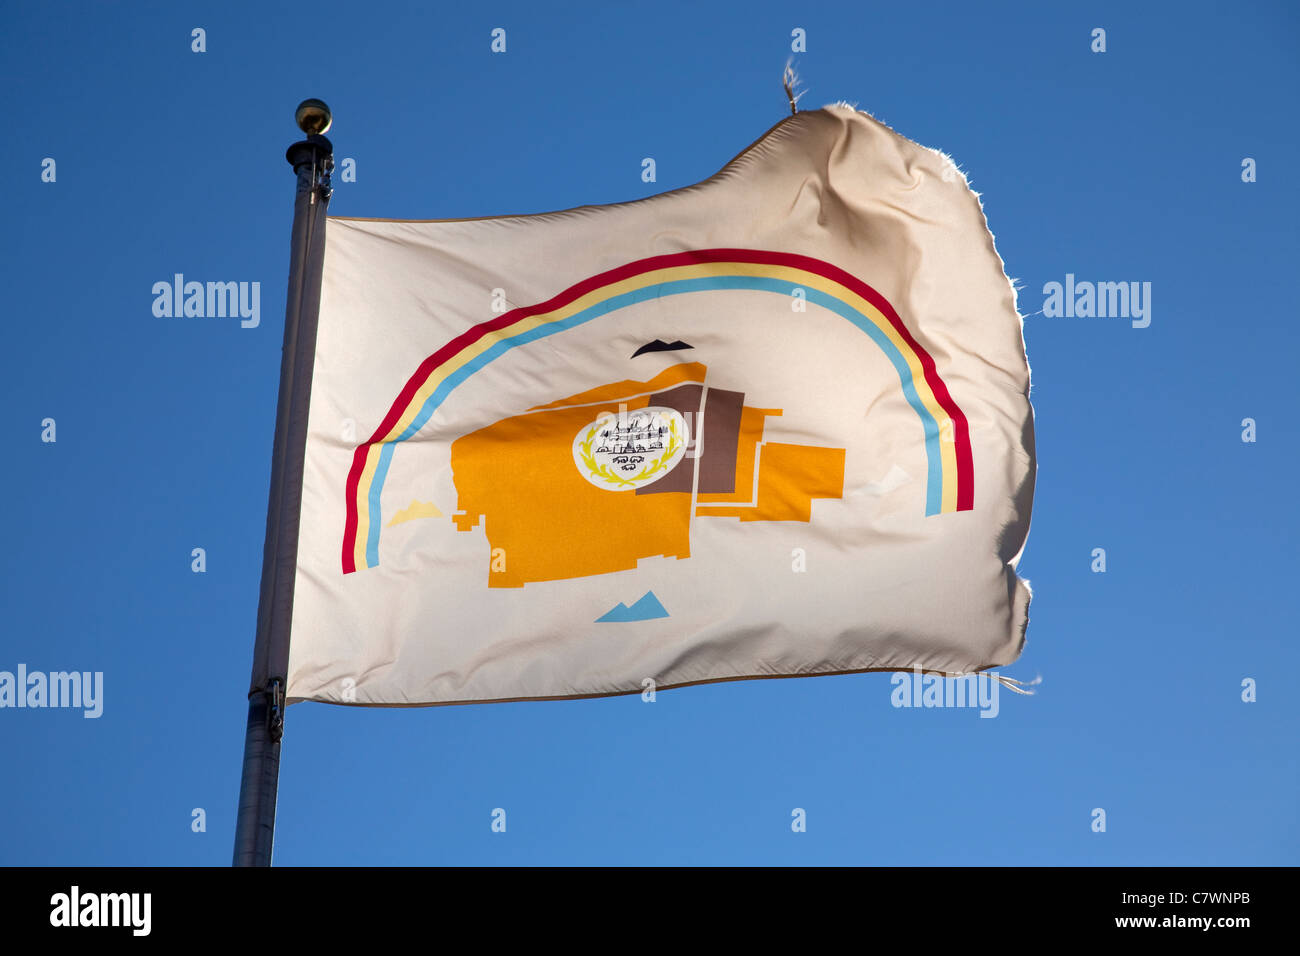 flag of the navajo nation native american indians against a blue summer sky at their headquarters at Window Rock - Stock Image